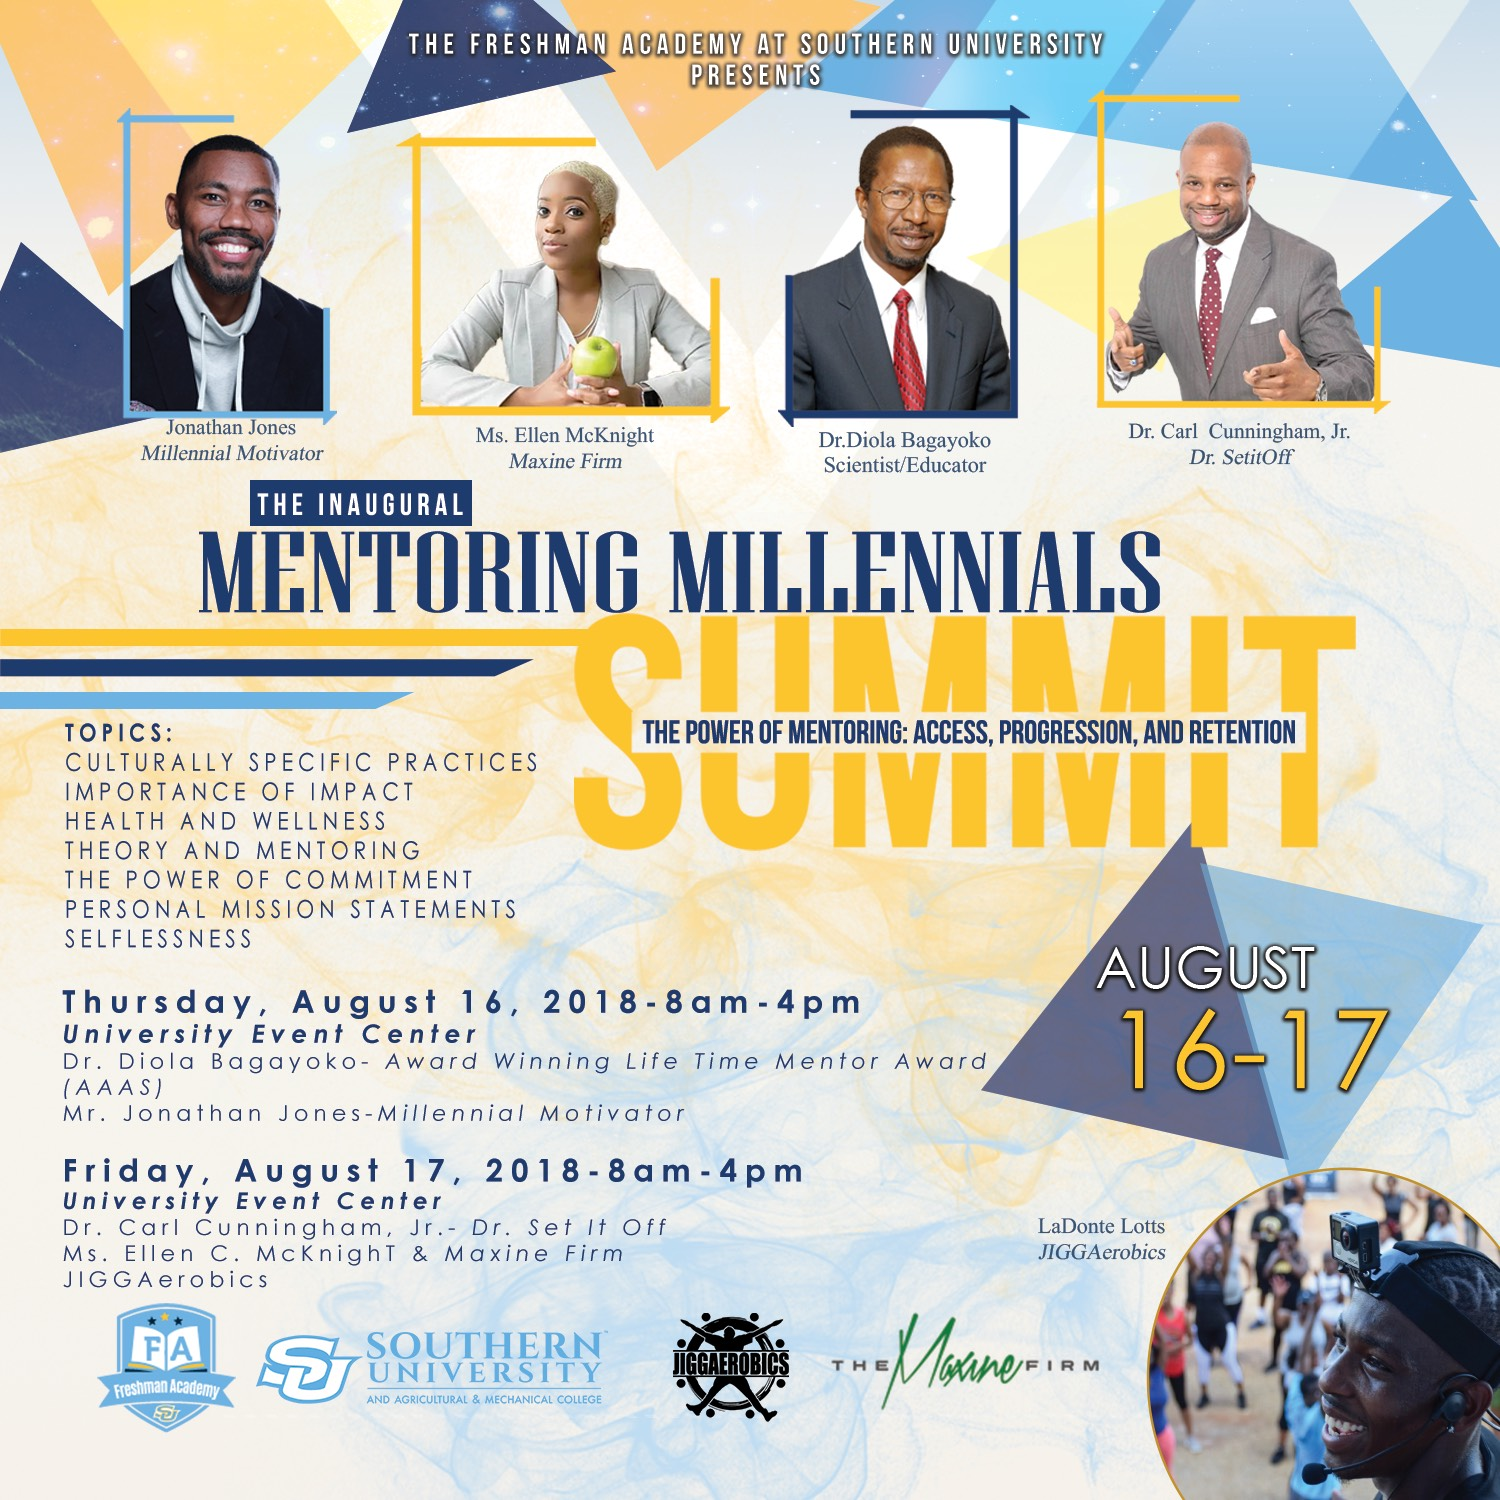 2018 Mentoring Millennials Summit